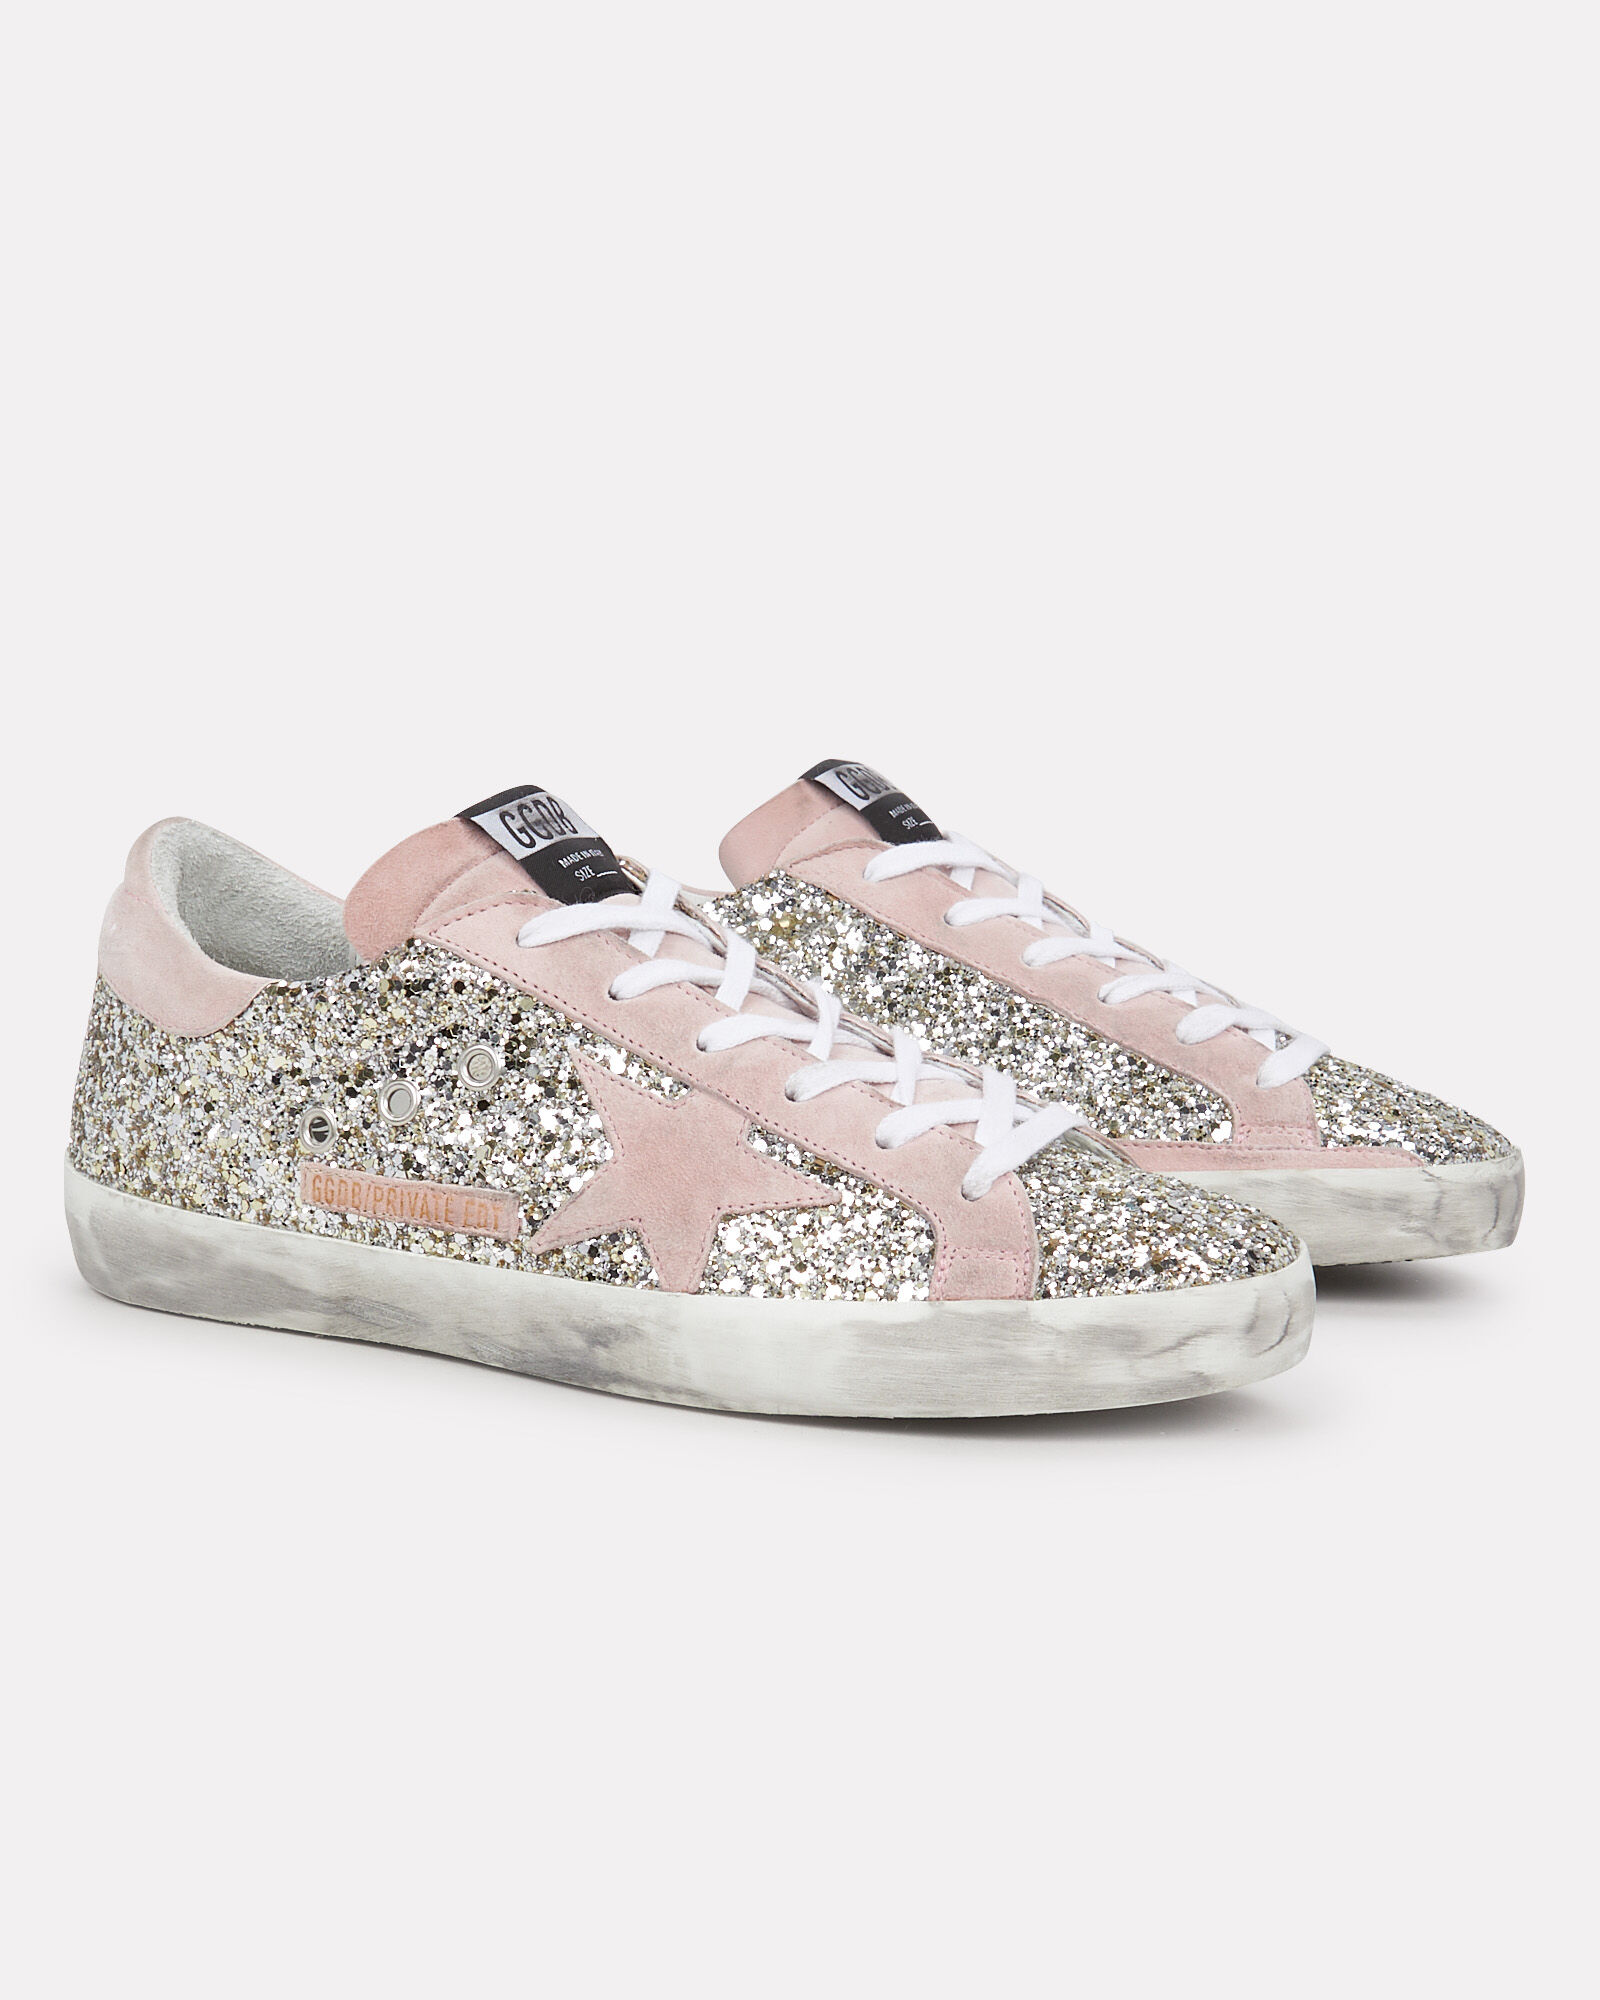 Superstar Glitter Low-Top Sneakers, SILVER/BLUSH, hi-res